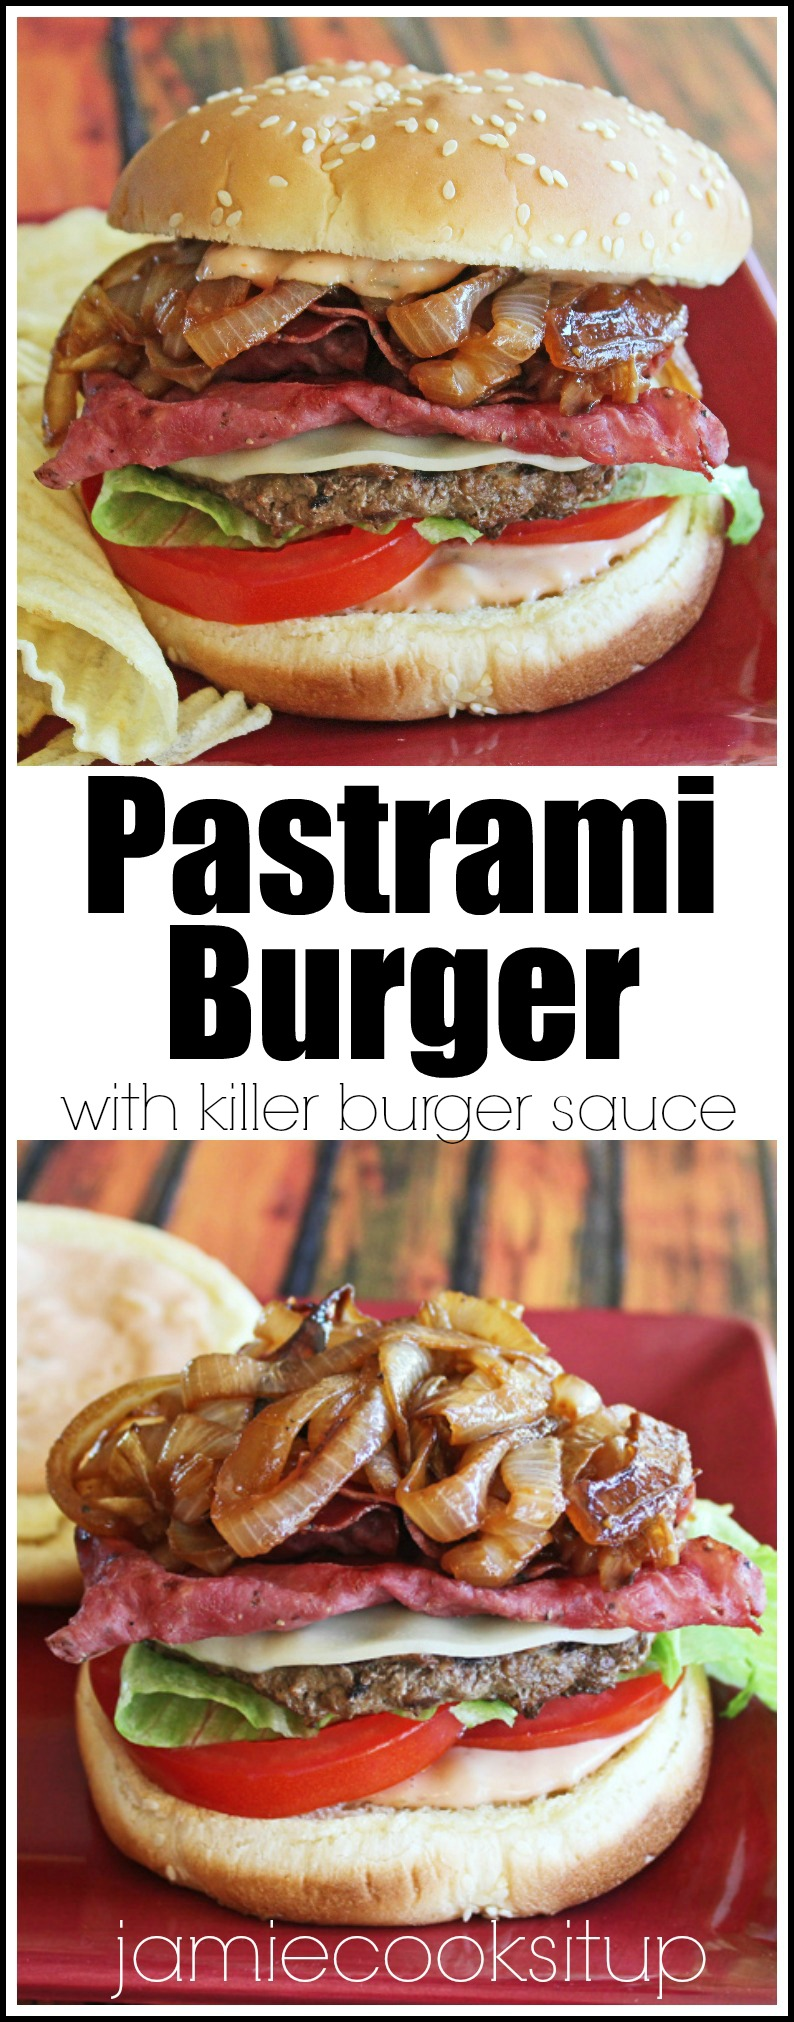 Pastrami Burger with Killer Burger Sauce from Jamie Cooks It Up!